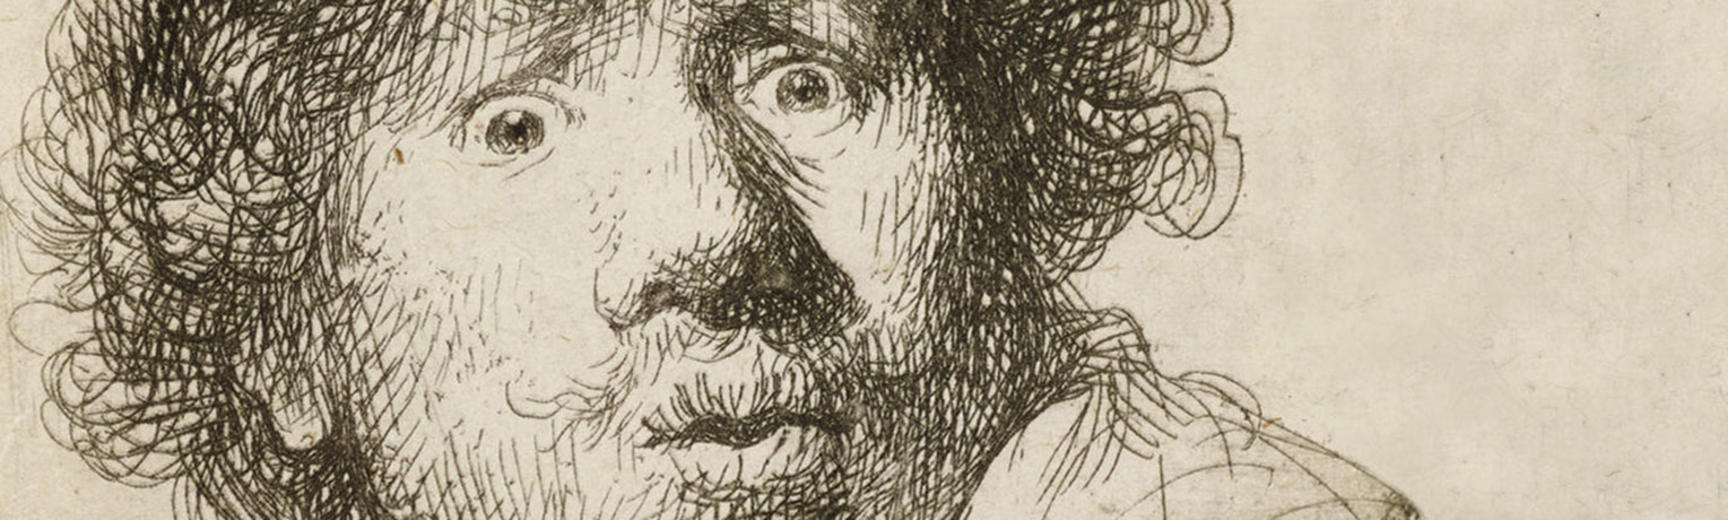 Rembrandt drawing detail